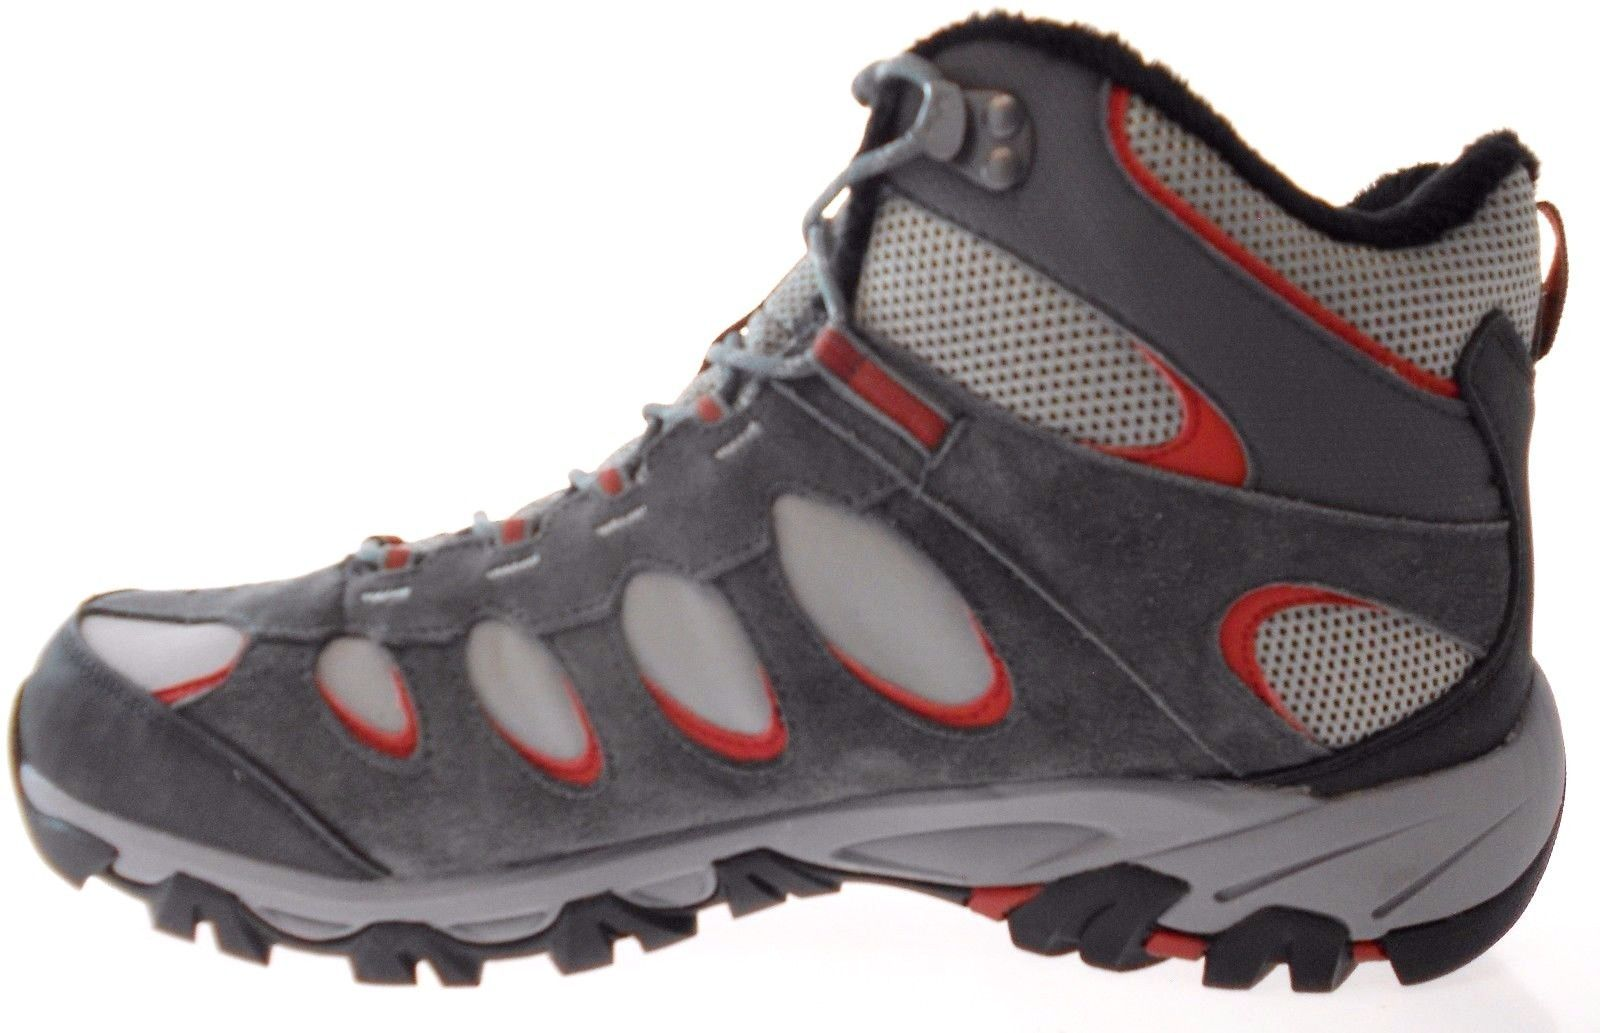 MERRELL RIDGEPASS THERMO MID WATERPROOF MEN'S HIKING BOOTS SZ 7, 7.5, #J227163C